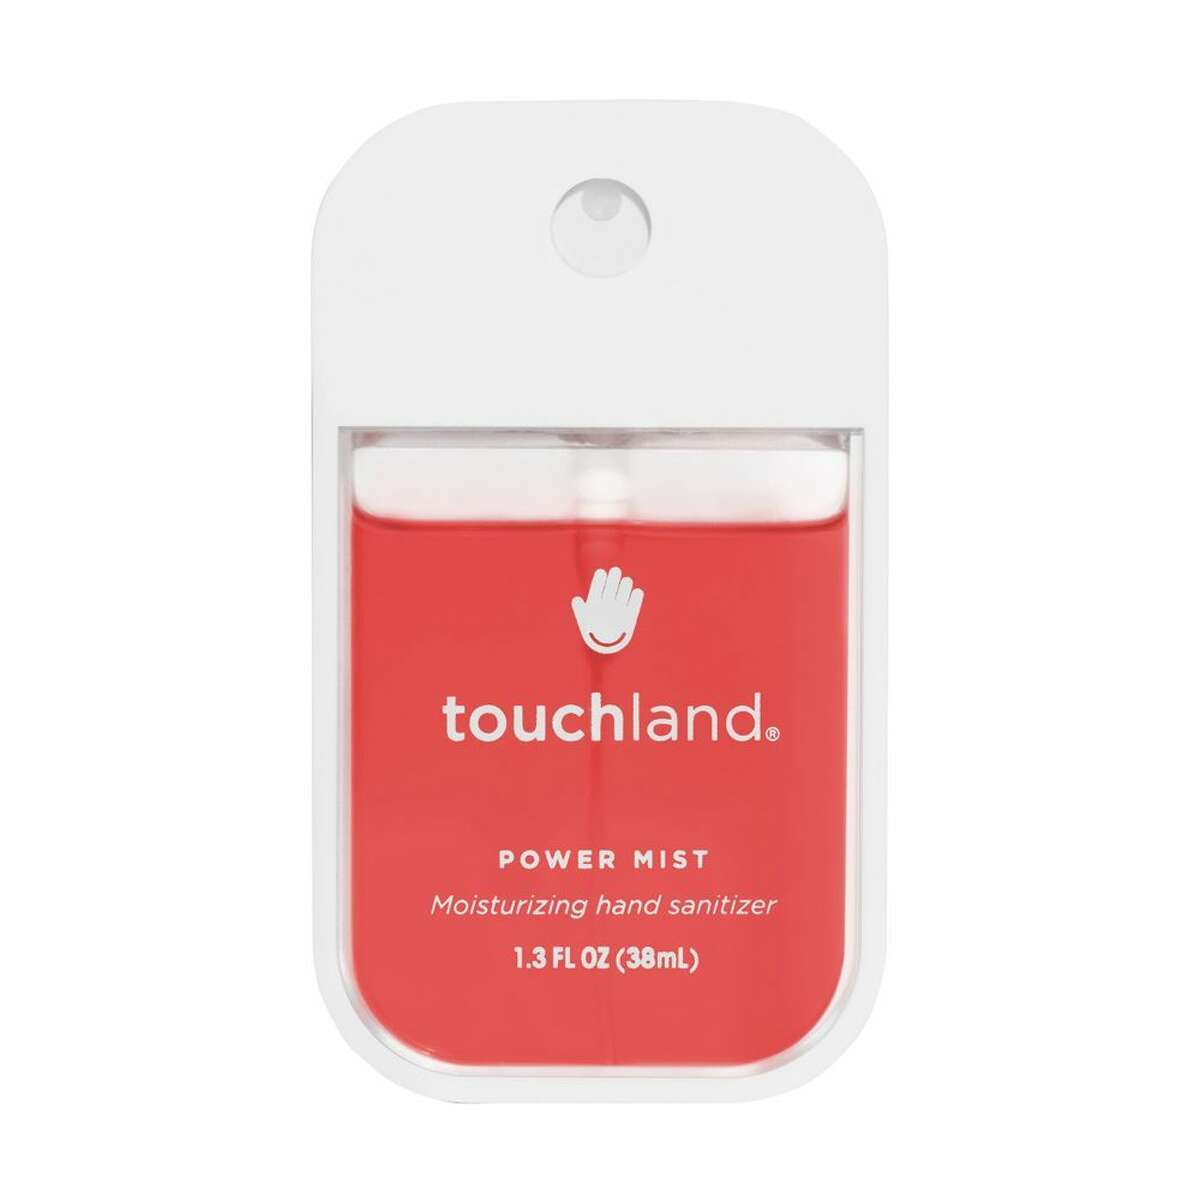 1) Touchland Power Mist Moisturizing Hand Sanitizer: $12.00 Shop Now Touchland's must-have hand sanitizers are as trendy as tie-dye projects, puzzles, and bread-making, but it's what's inside of their super sleek packaging that'll influence any germaphobe. From their sweet range of scents, to their speedy absorption, and most importantly, their hydrating, germ-busting benefits, there's so much to love in such a small, sprayable bottle.